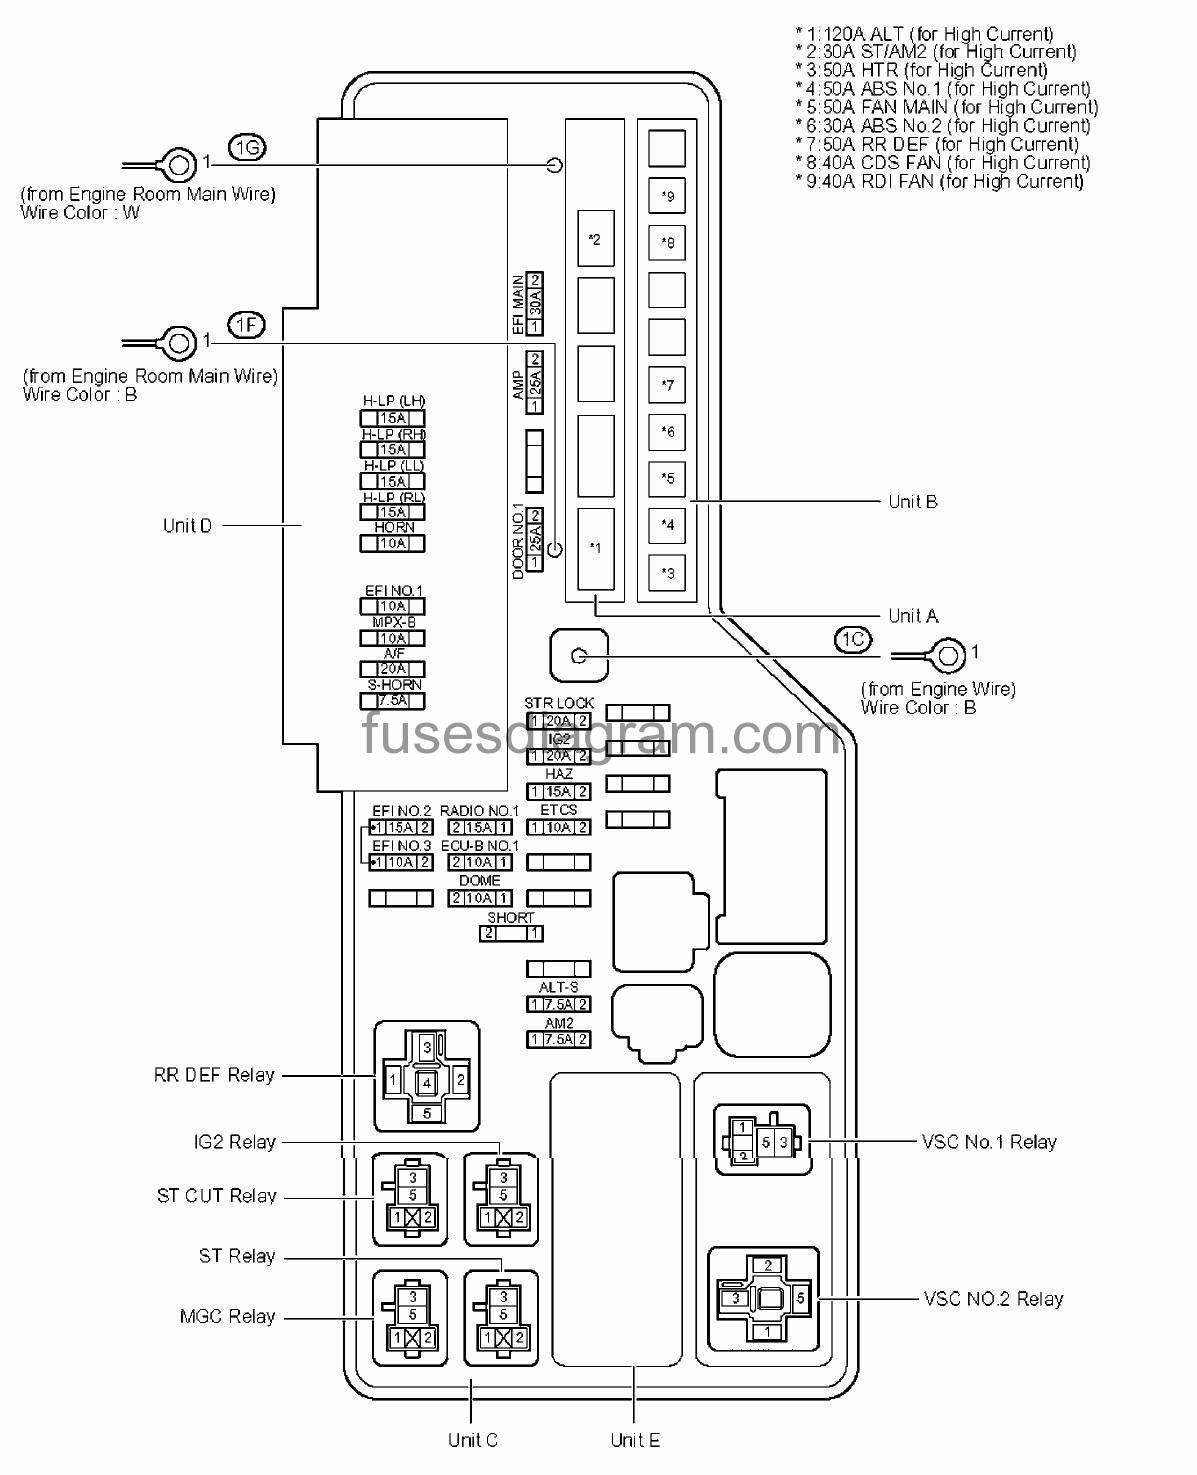 hight resolution of fuse box 97 toyota camry wiring diagram detailed 98 camry fuse box diagram fuse box location in 99 camry